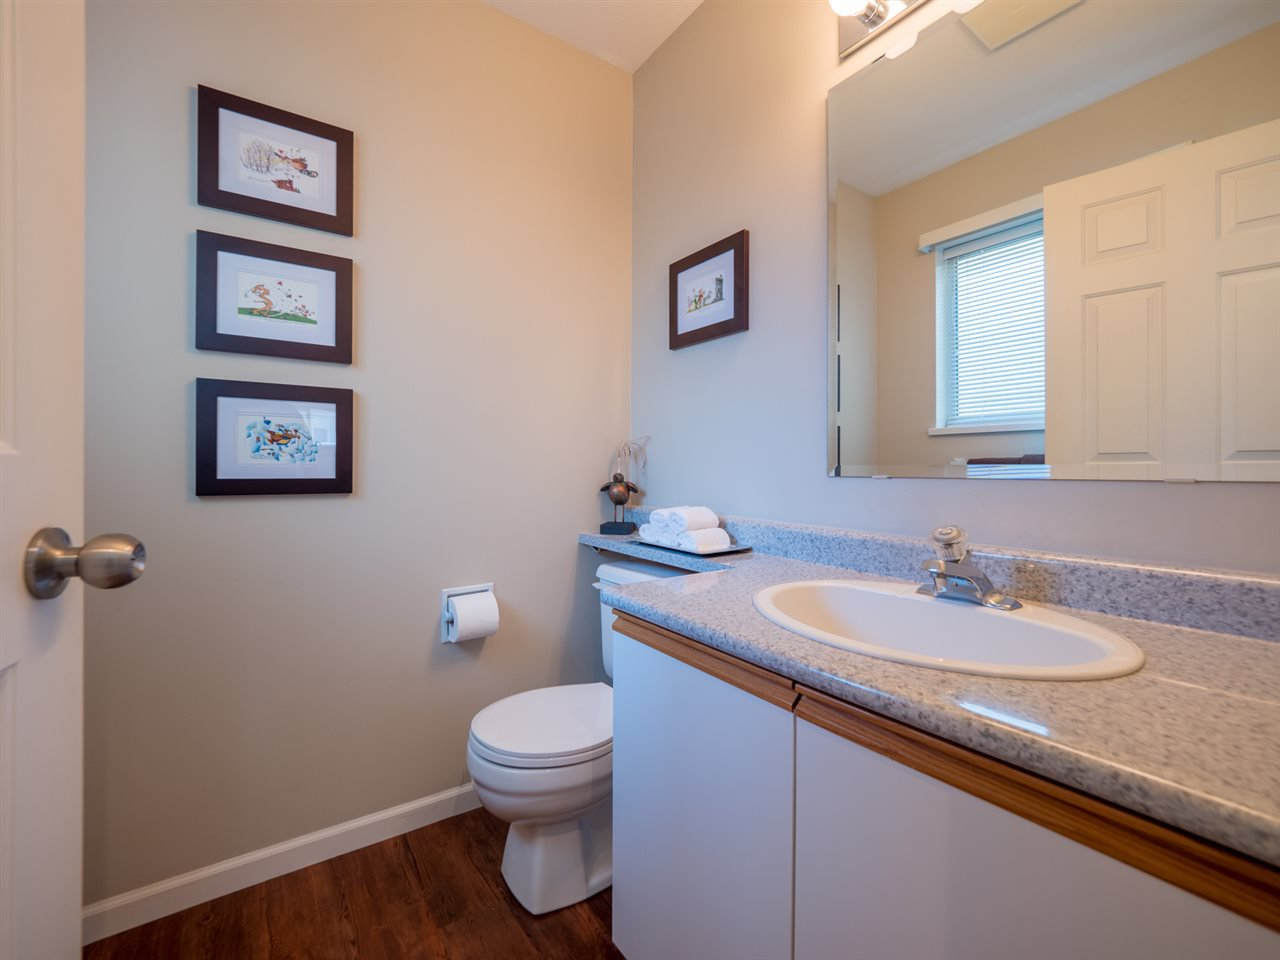 """Photo 11: Photos: 16 5630 TRAIL Avenue in Sechelt: Sechelt District Townhouse for sale in """"HIGHPOINT"""" (Sunshine Coast)  : MLS®# R2382780"""